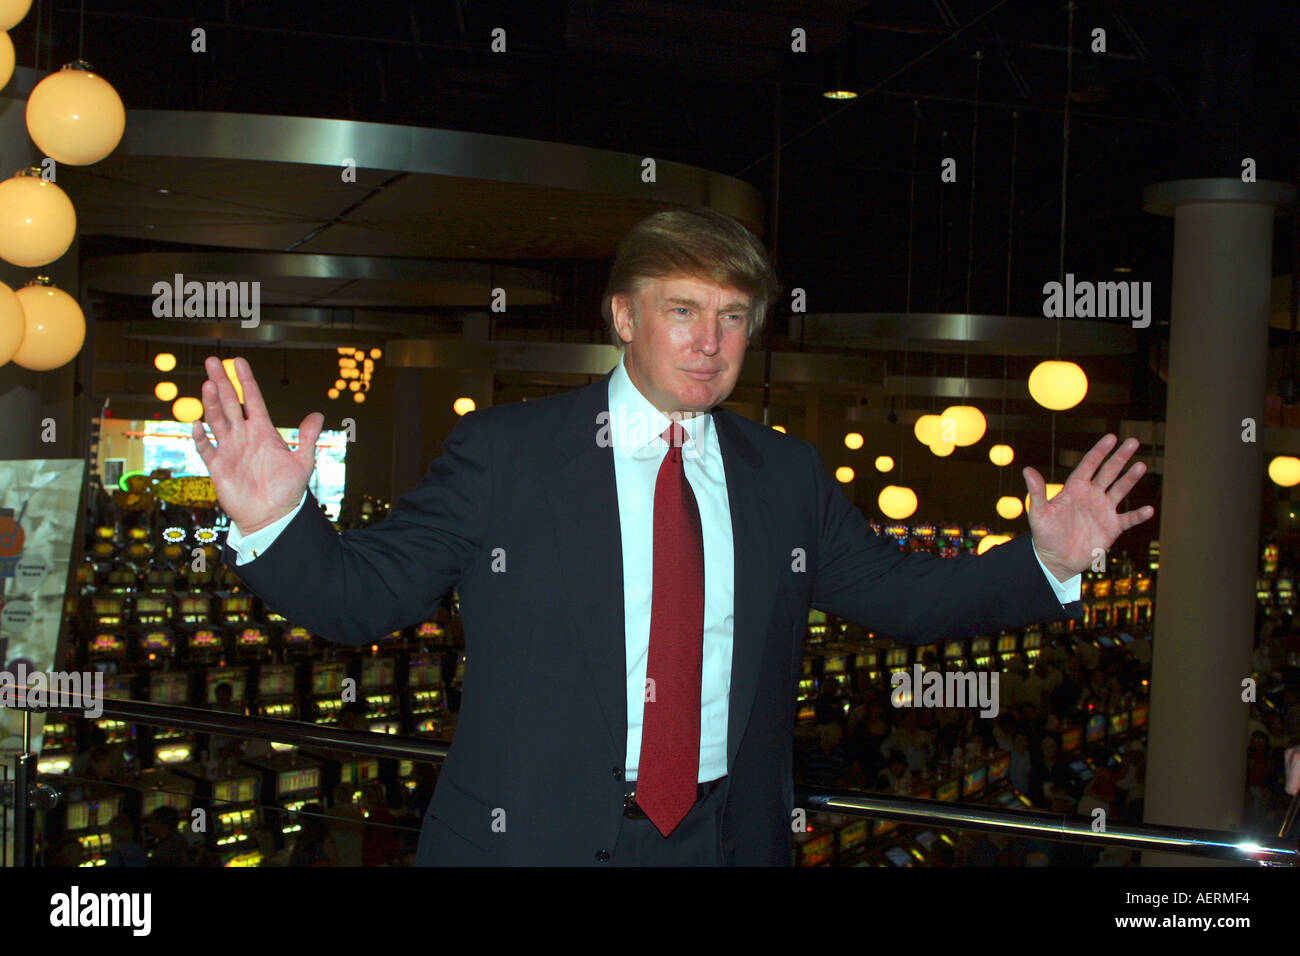 Donald Trump - Stock Image